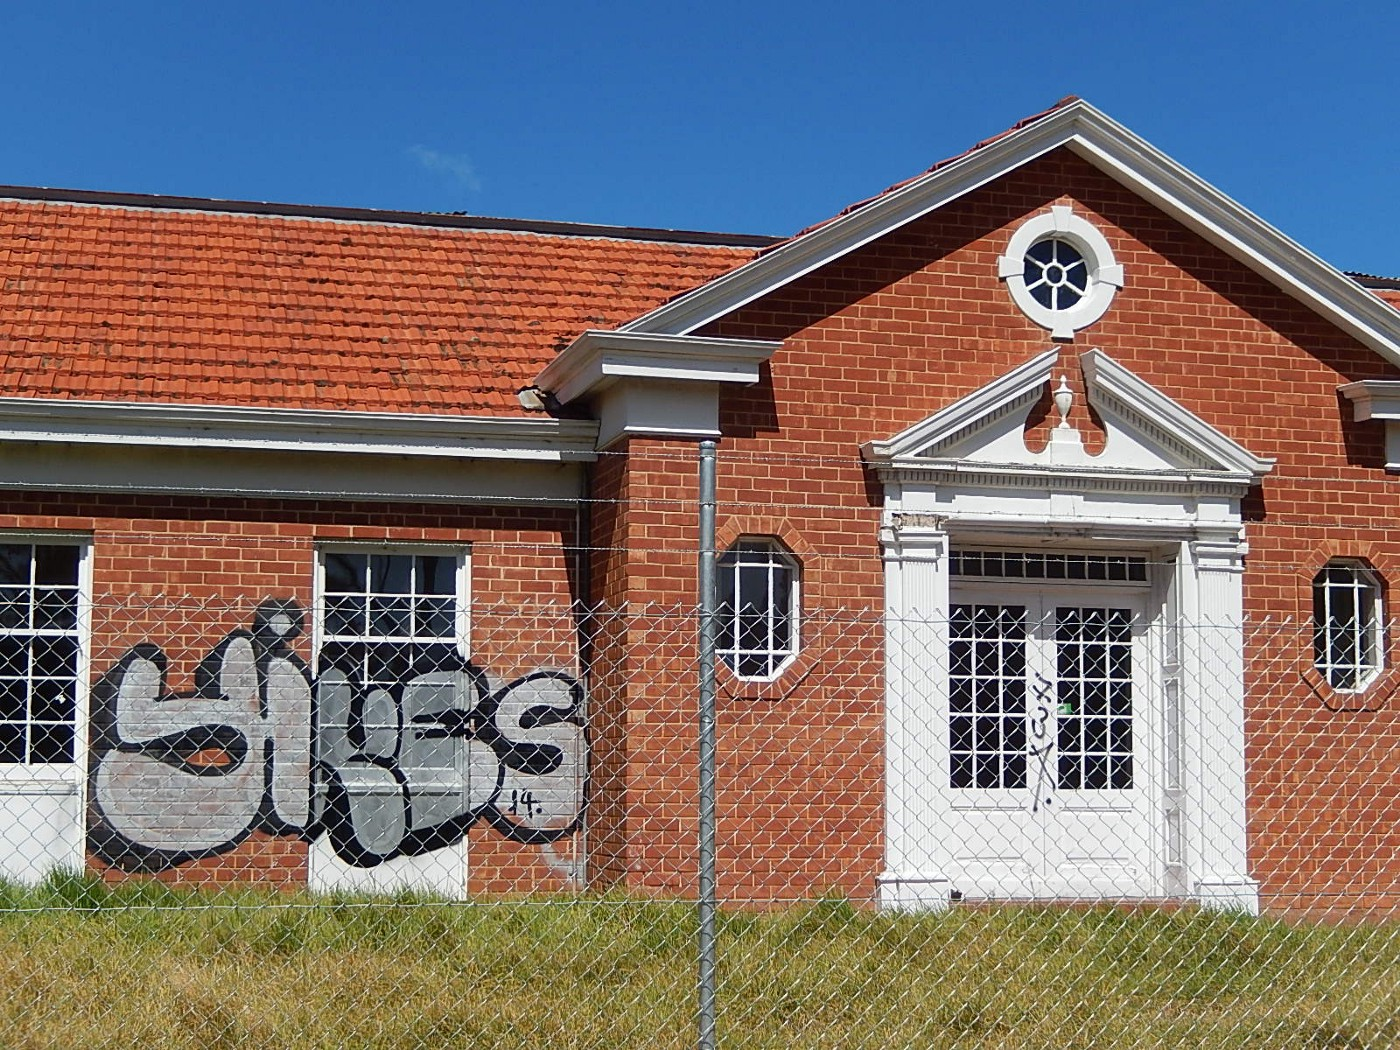 """A dilapidated one-story building with """"yikes"""" graffittied over a window, behind a chain-link fence."""